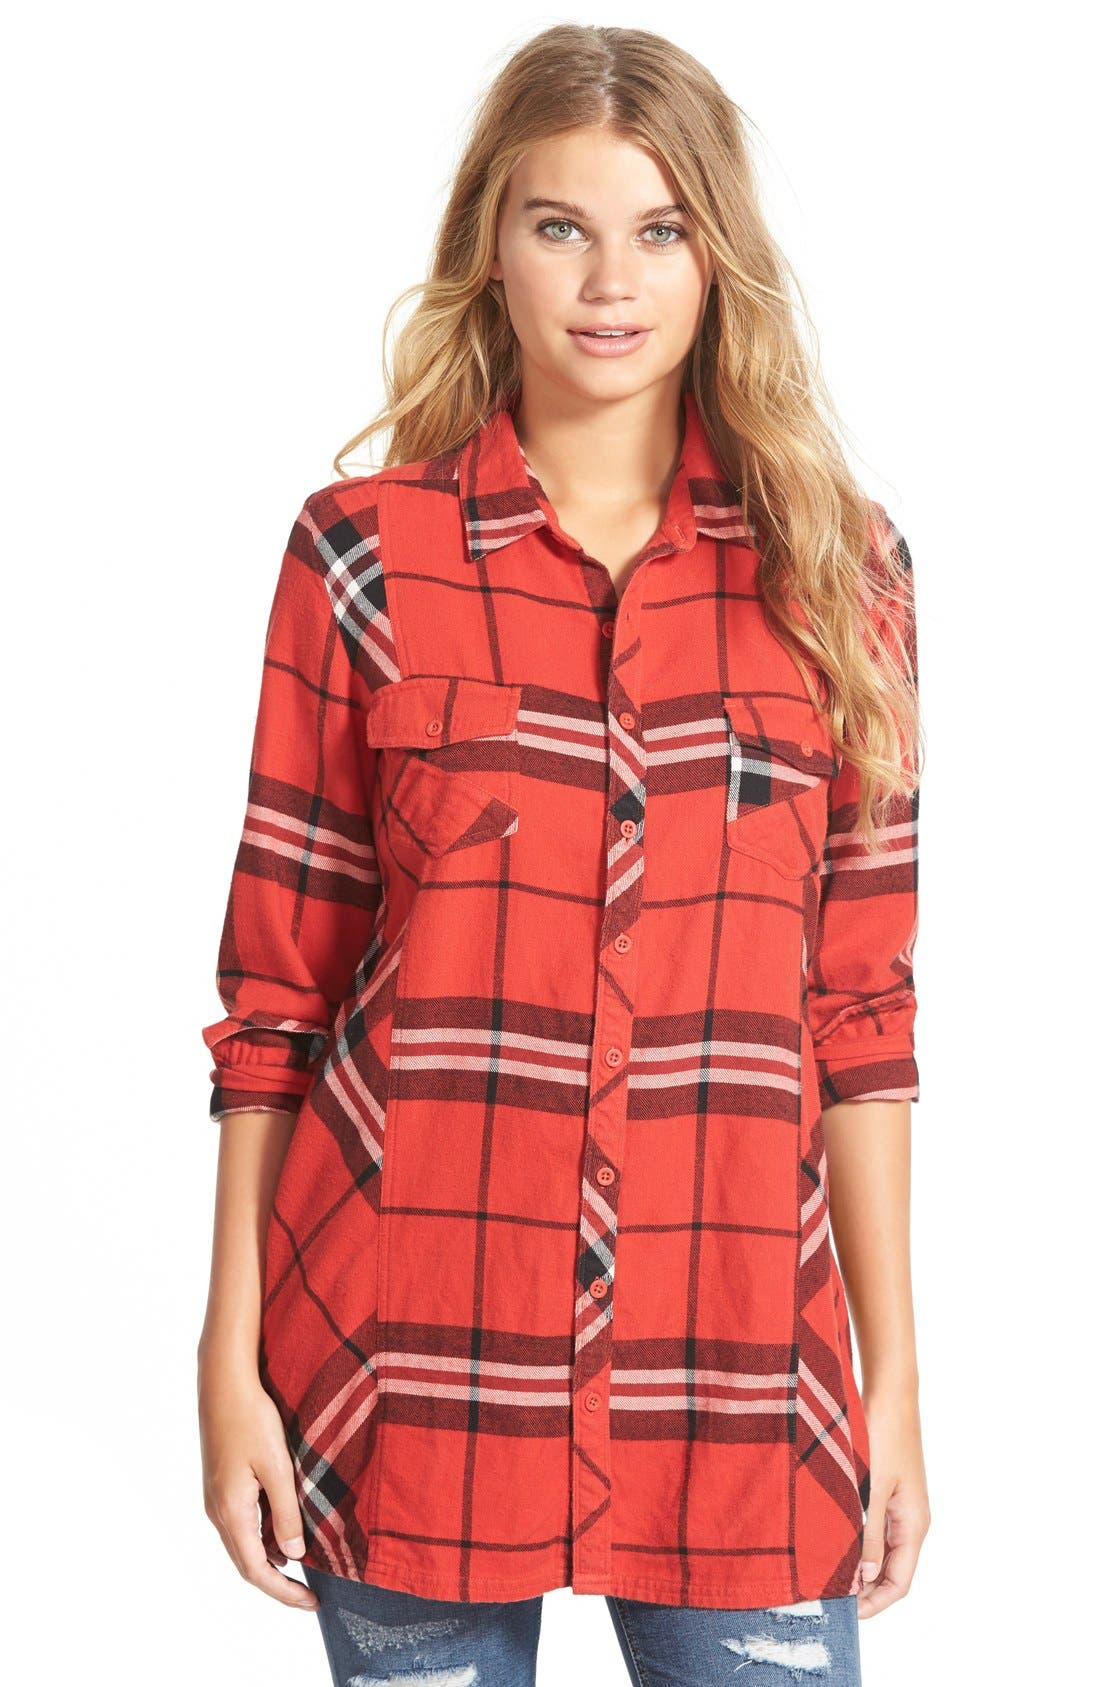 Alternate Image 1 Selected - Volcom 'Love Me Not' Plaid Button Front Tunic